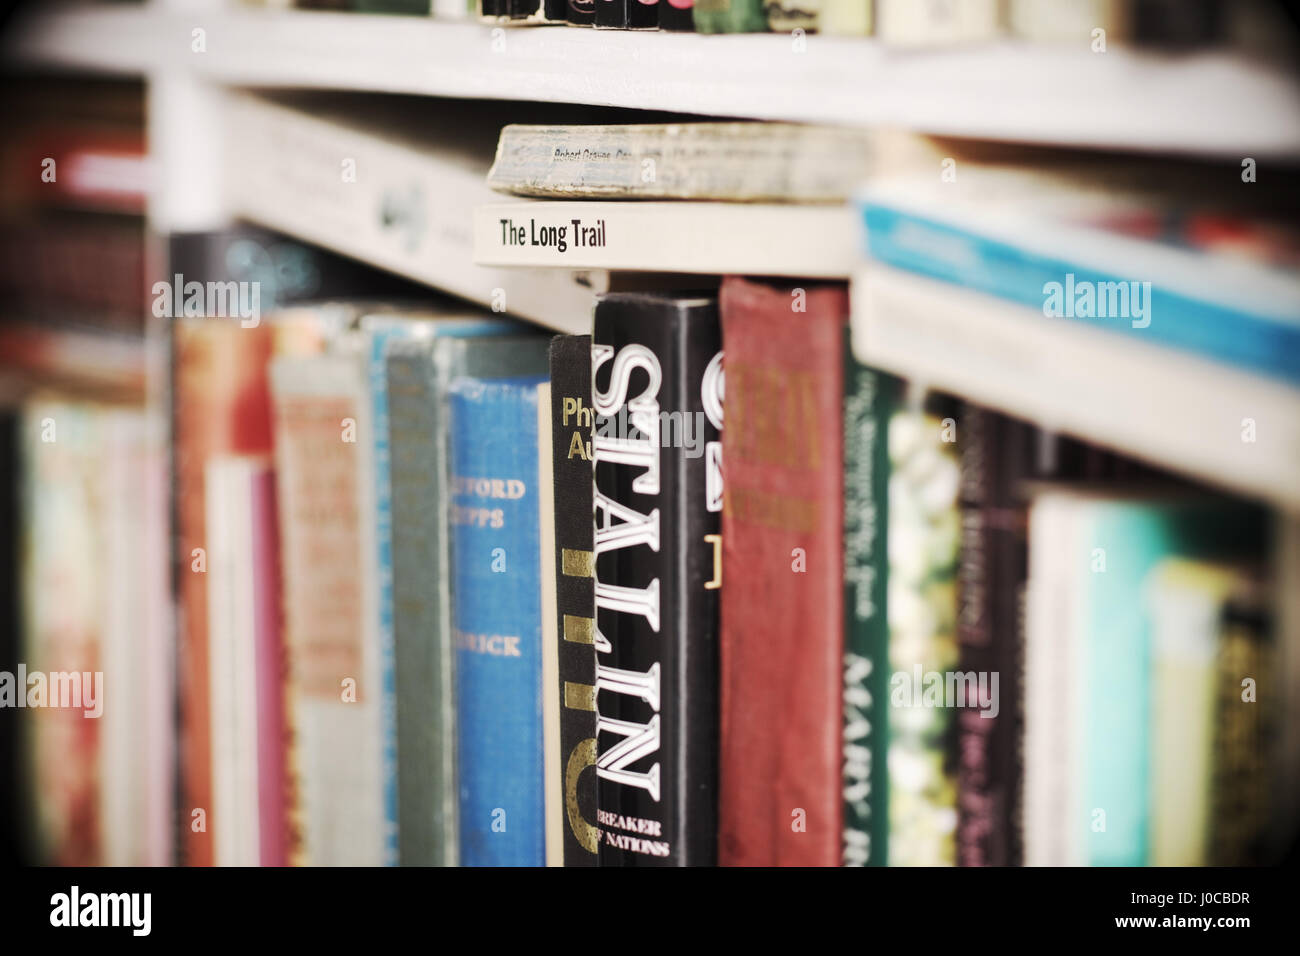 Hay on Wye - Secondhand books for sale Wales UK - Stock Image